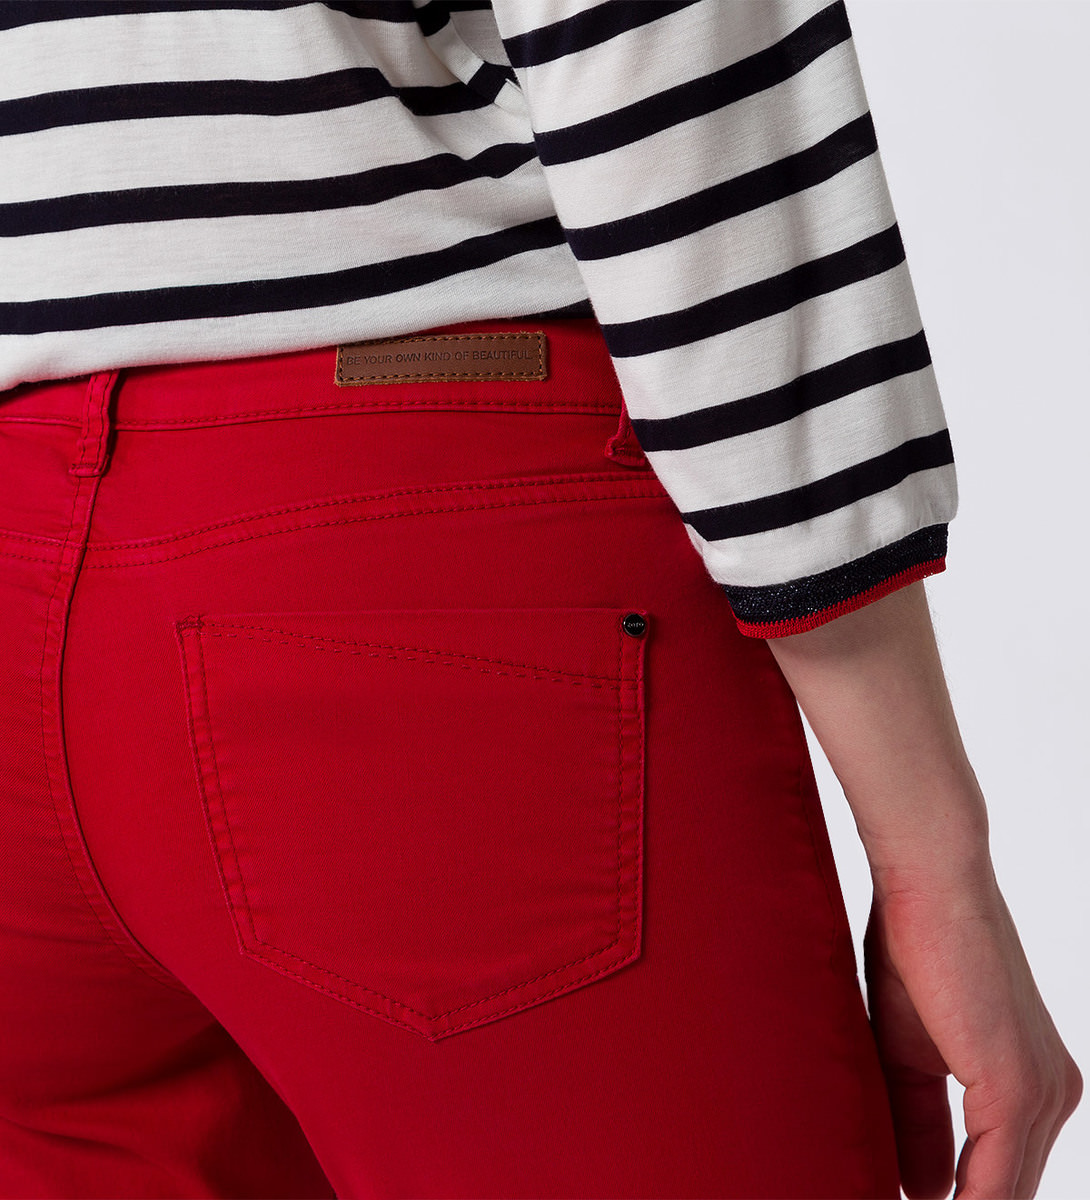 Jeans Seattle 32 Inch in flame red